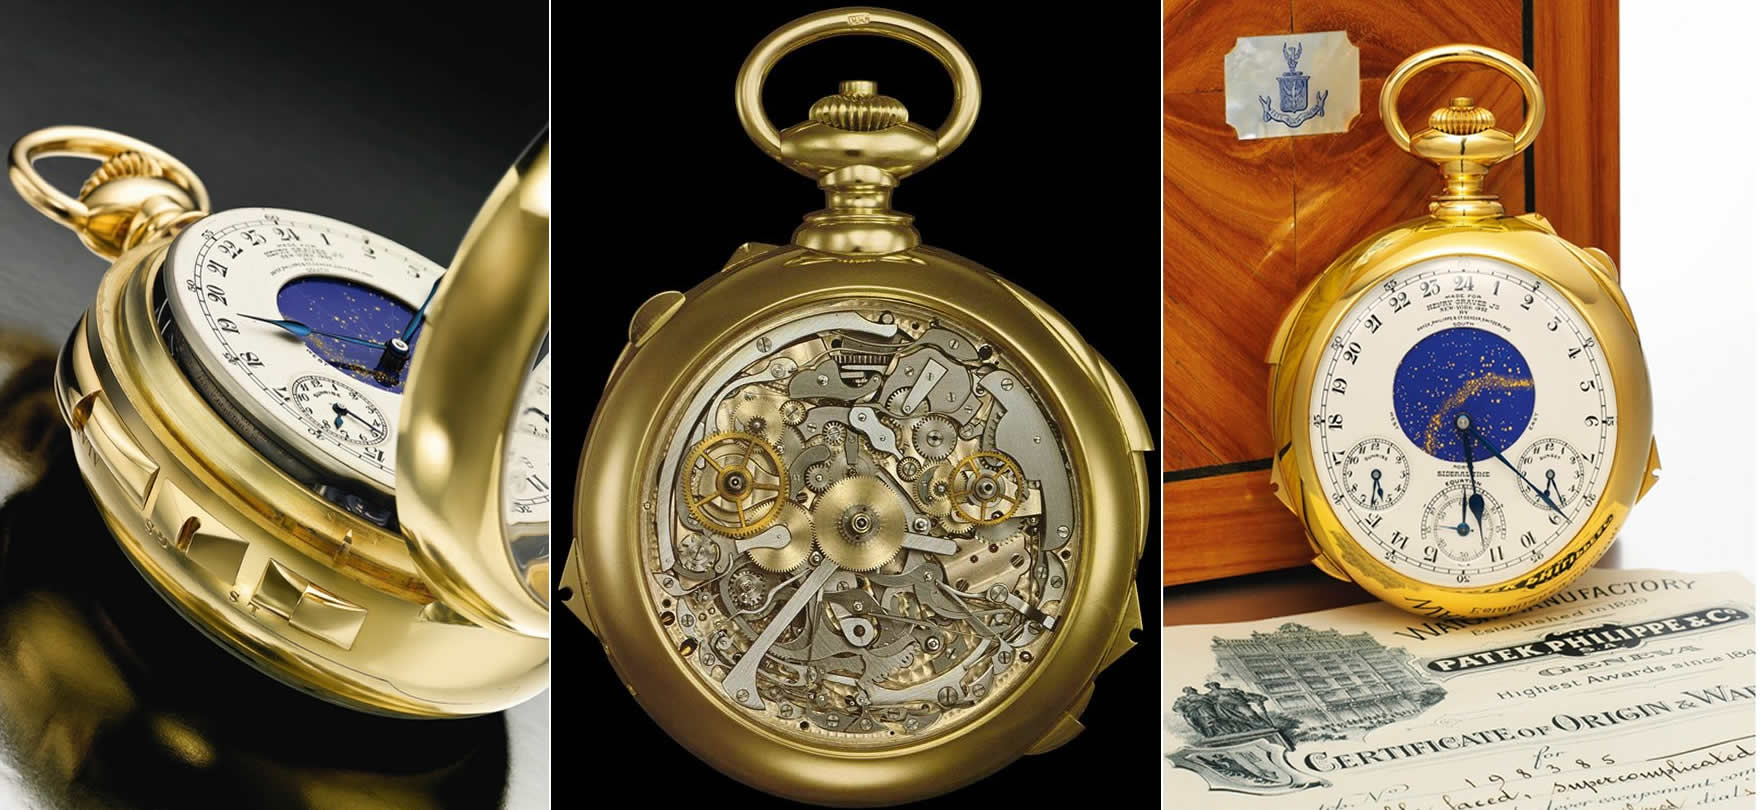 making-history-once-again-patek-philippe-henry-graves-junior-super-complication_1_1450074837